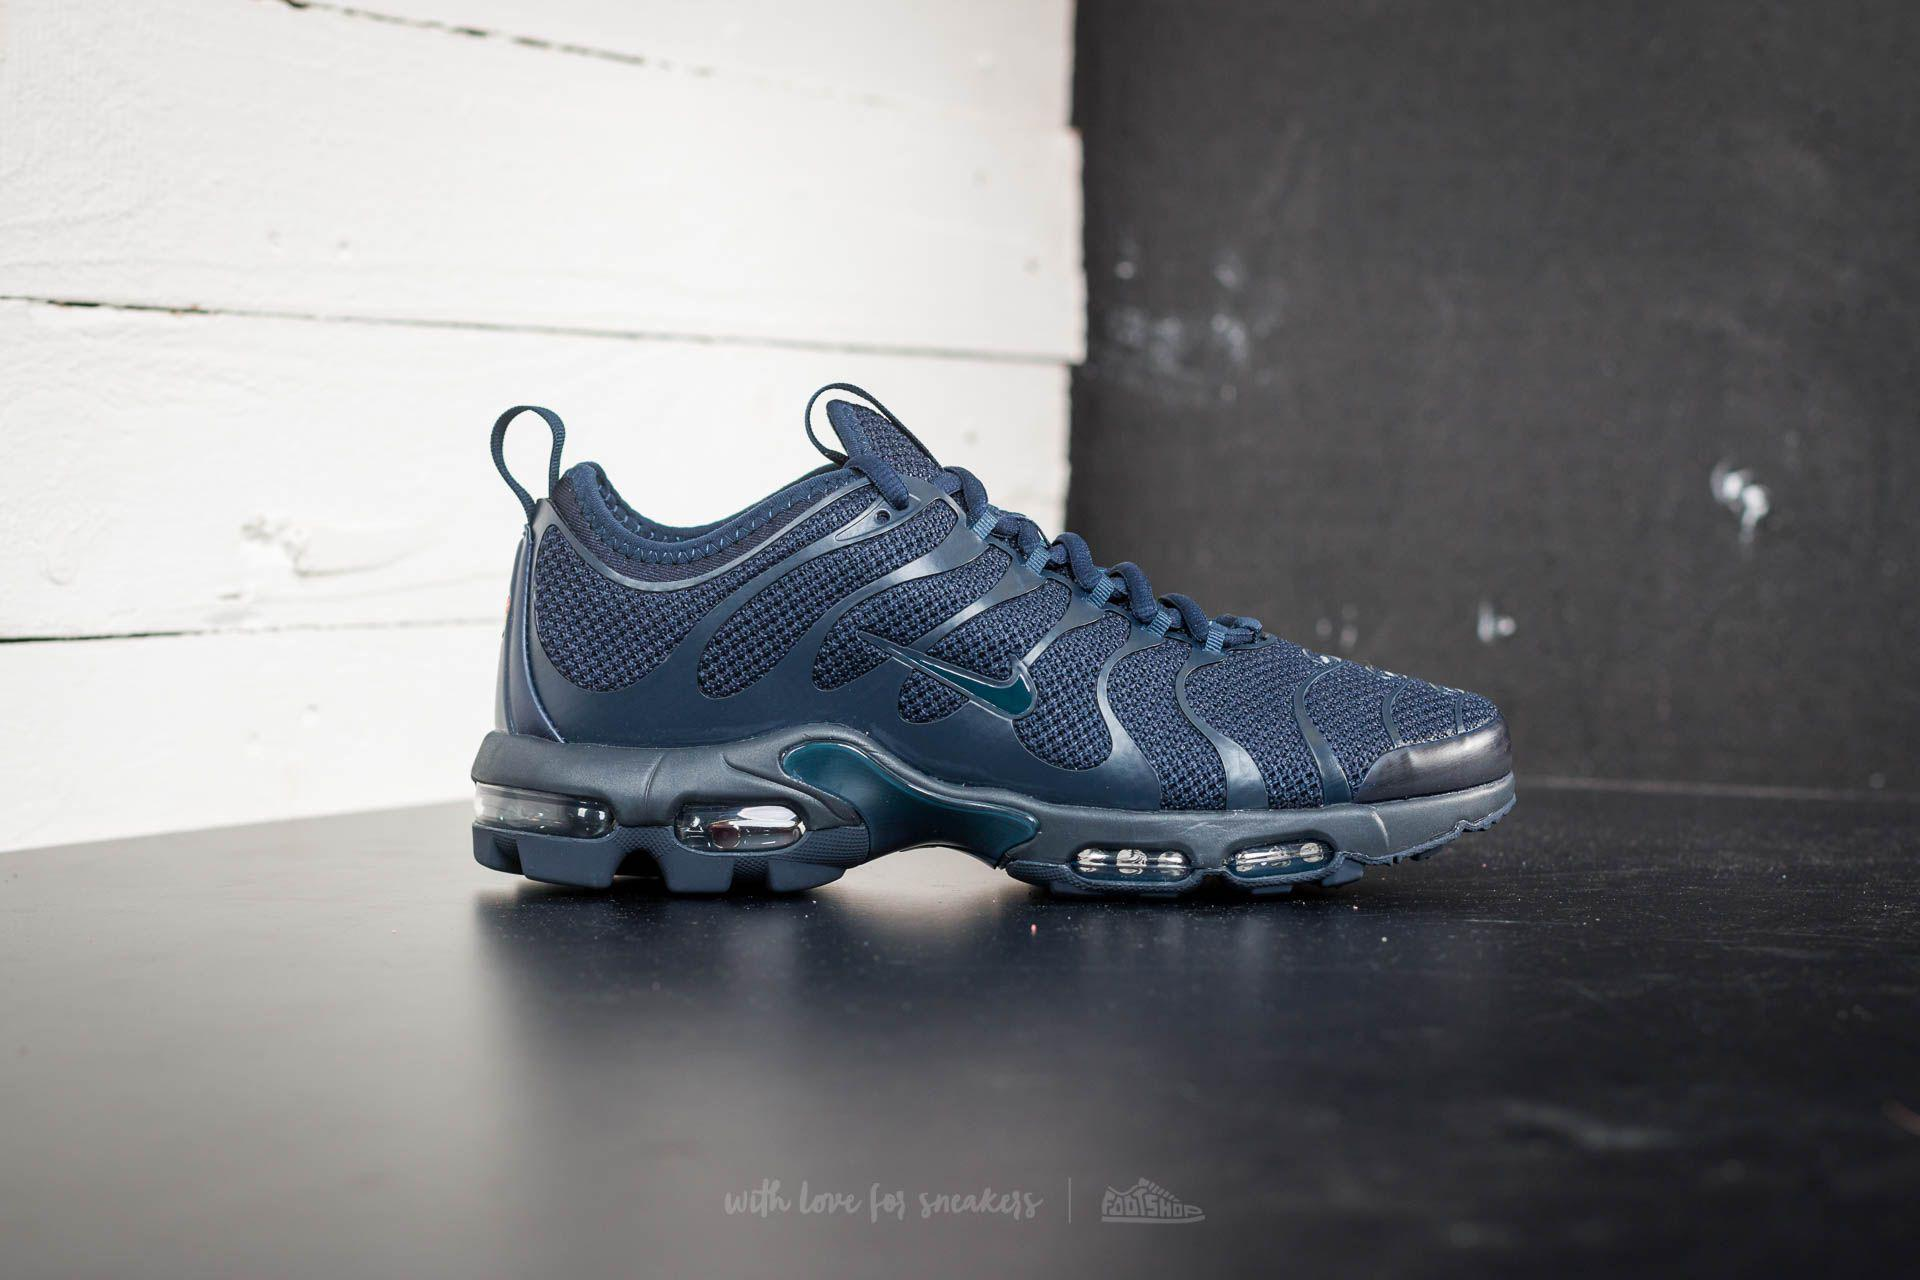 100% authentic 3a9e2 9c9c8 Lyst - Nike Air Max Plus Tn Ultra Obsidian  Armory Navy-obsidian in ...